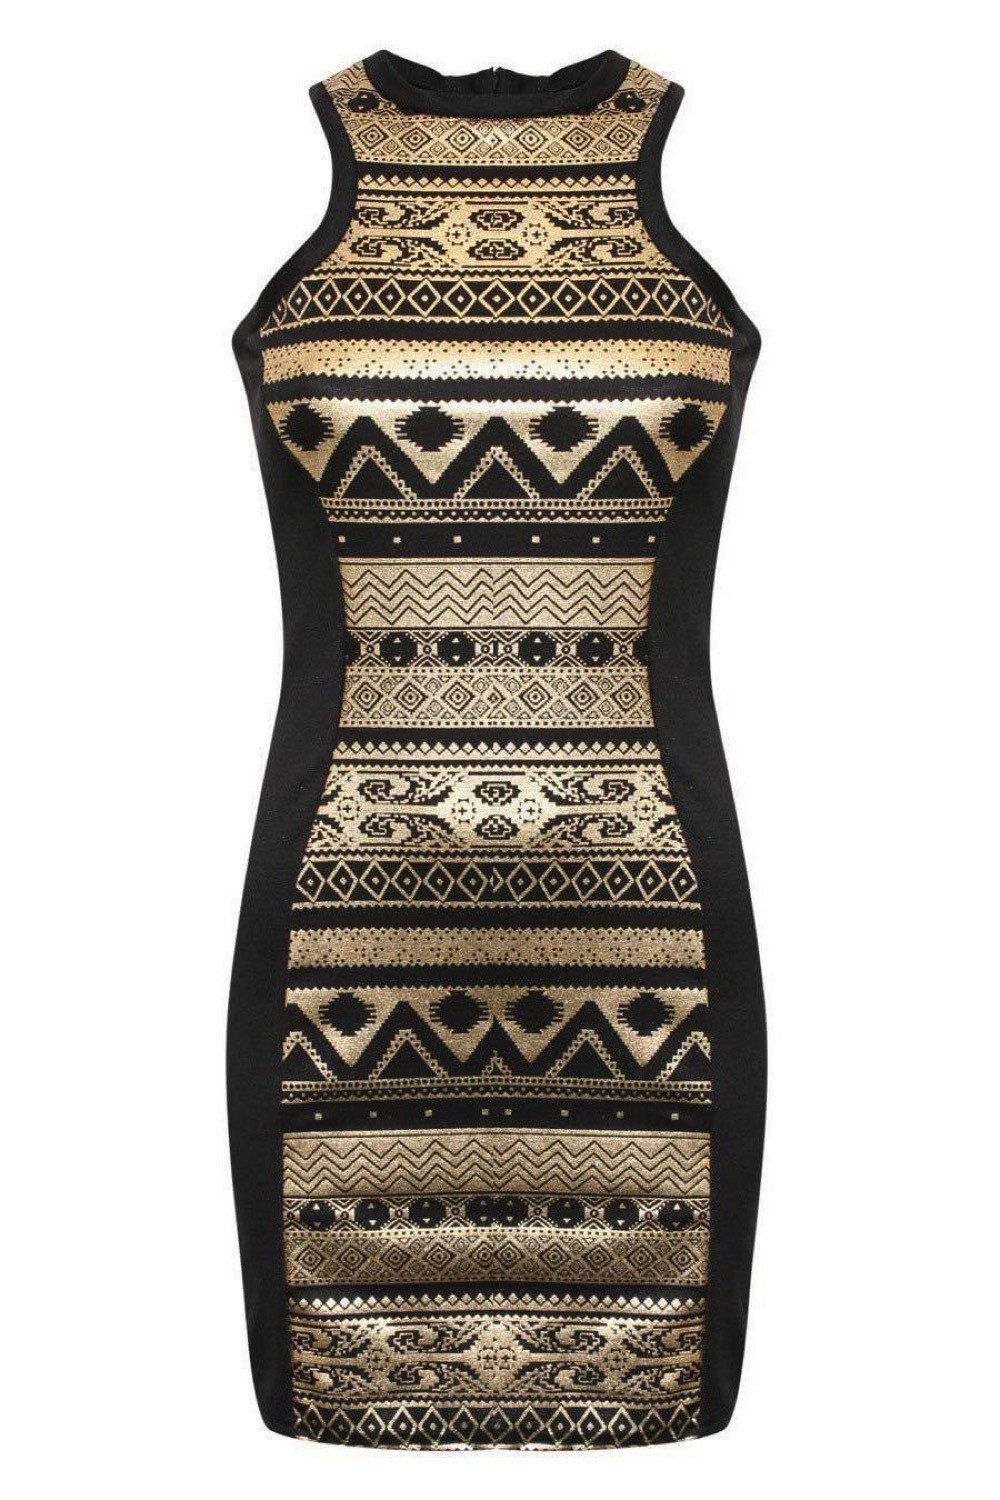 Gold Aztec Print Bodycon Party Dress in Black FRONT